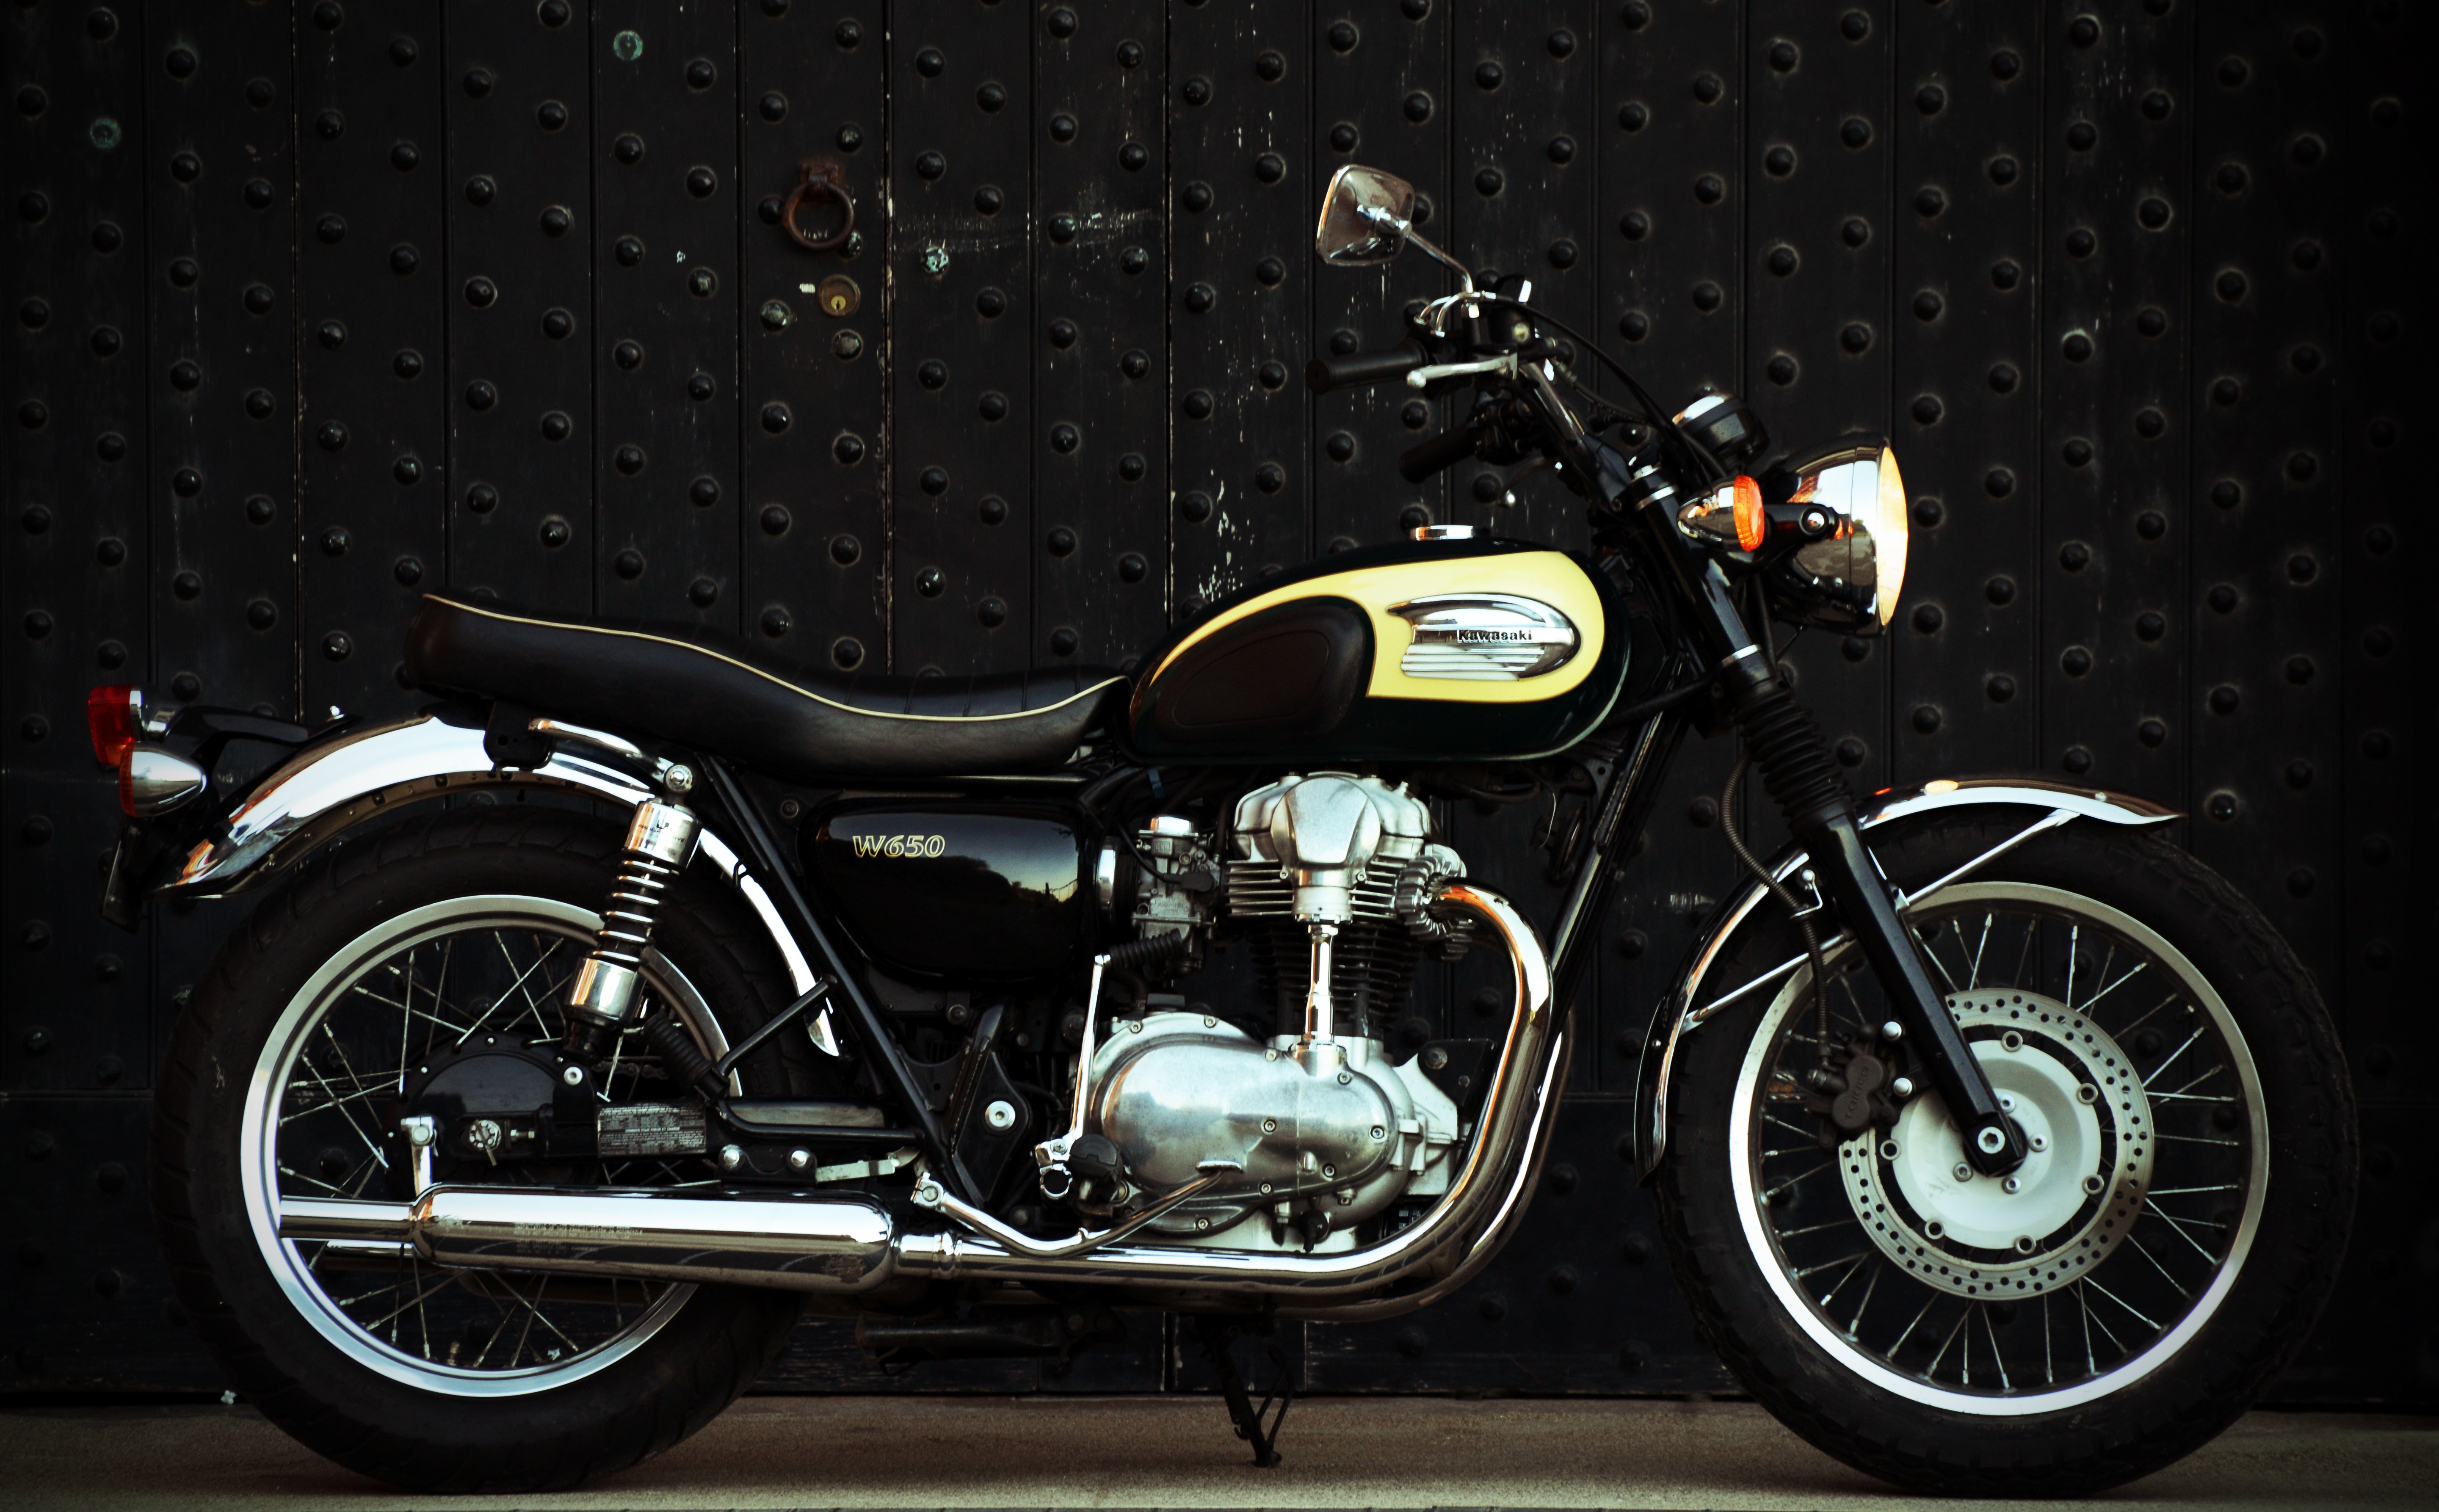 Kawasaki W 650 1999 wallpapers #134639